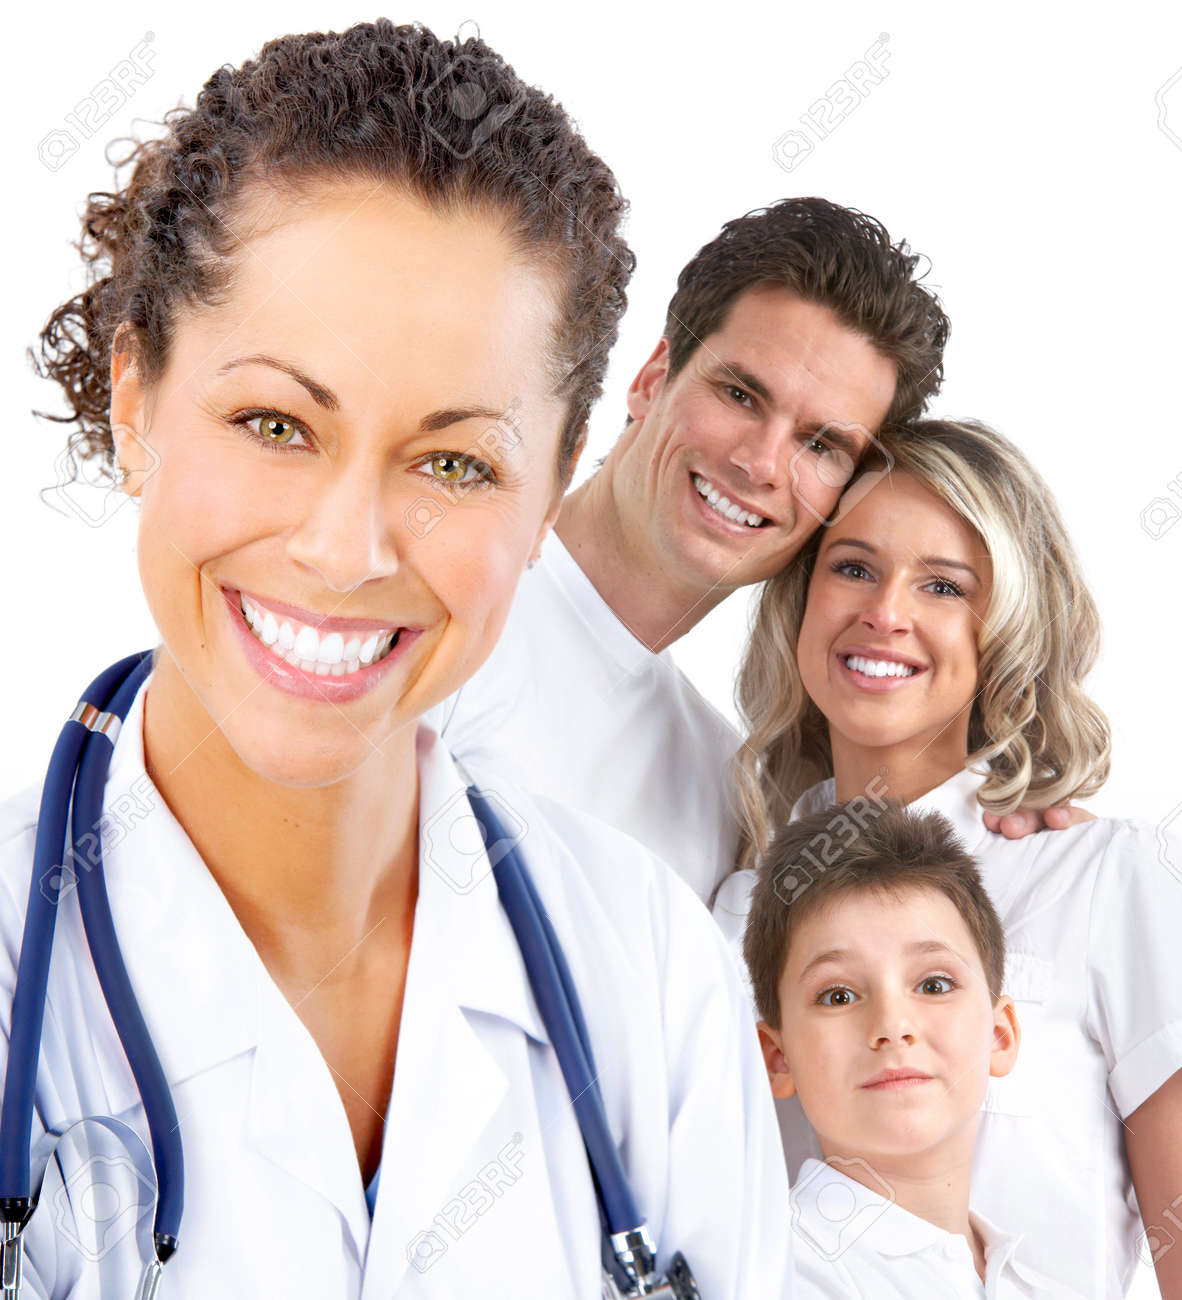 Smiling family medical doctor and young family. Over white background Stock Photo - 6817911